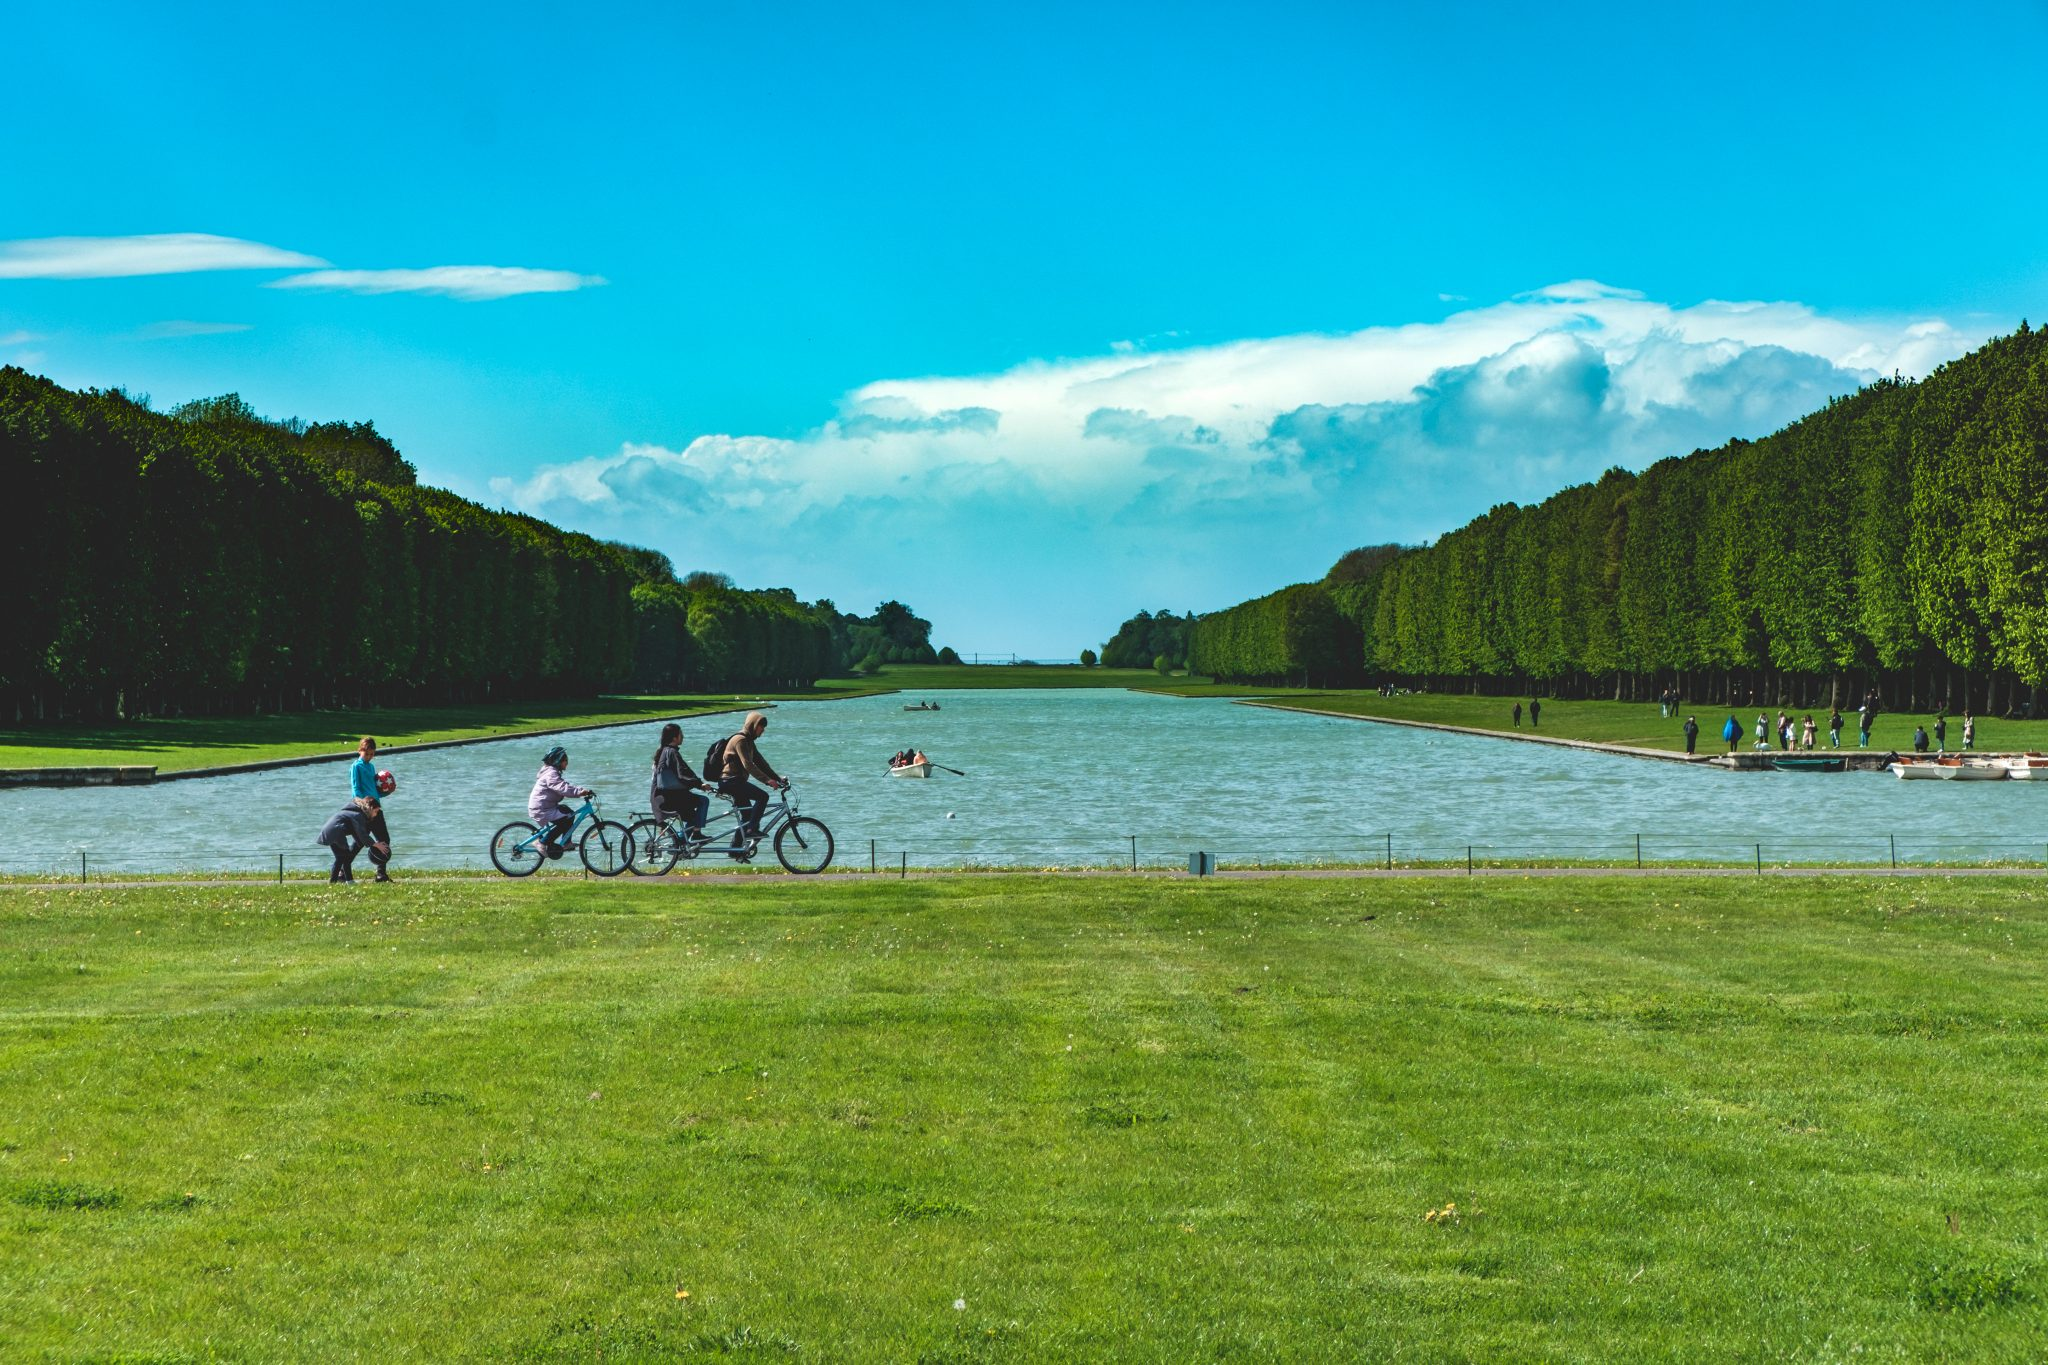 Lake in the garden of the chateau de versailles photo by Jo Kassis